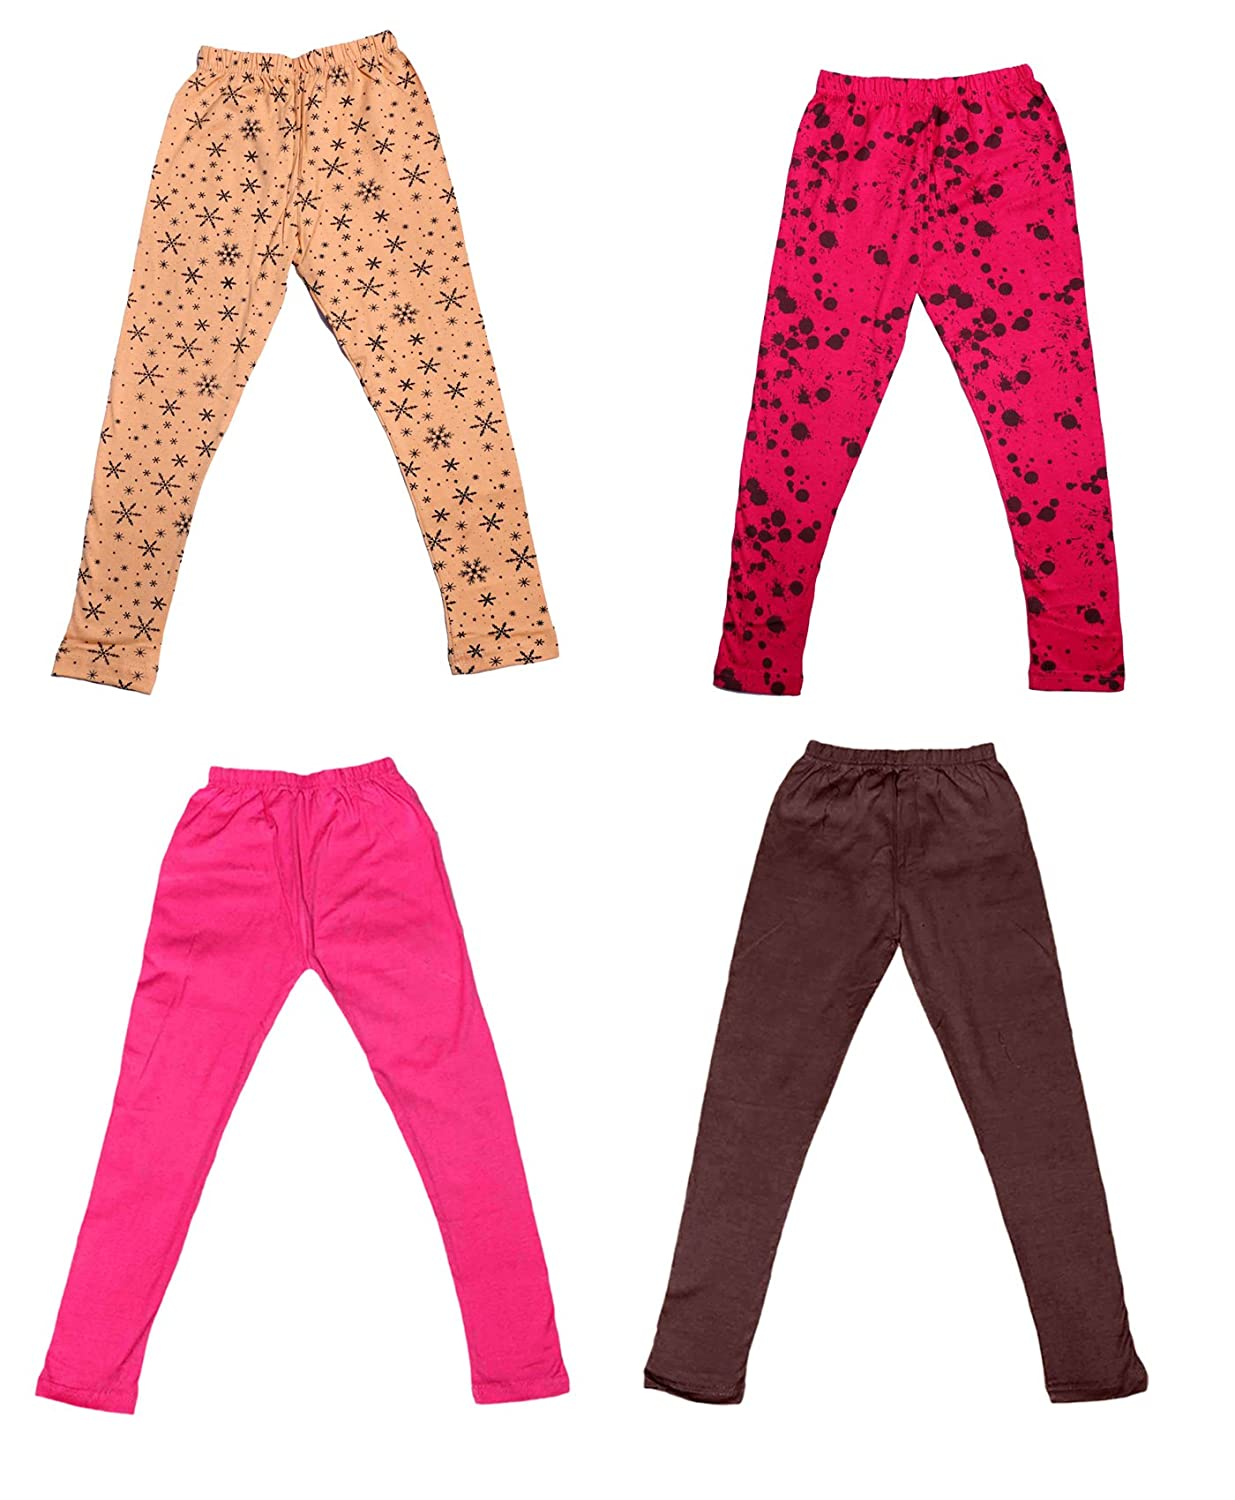 Pack Of 4 and 2 Cotton Printed Legging Pants Indistar Girls 2 Cotton Solid Legging Pants /_Multicolor/_Size-1-3 Years/_71412131920-IW-P4-22